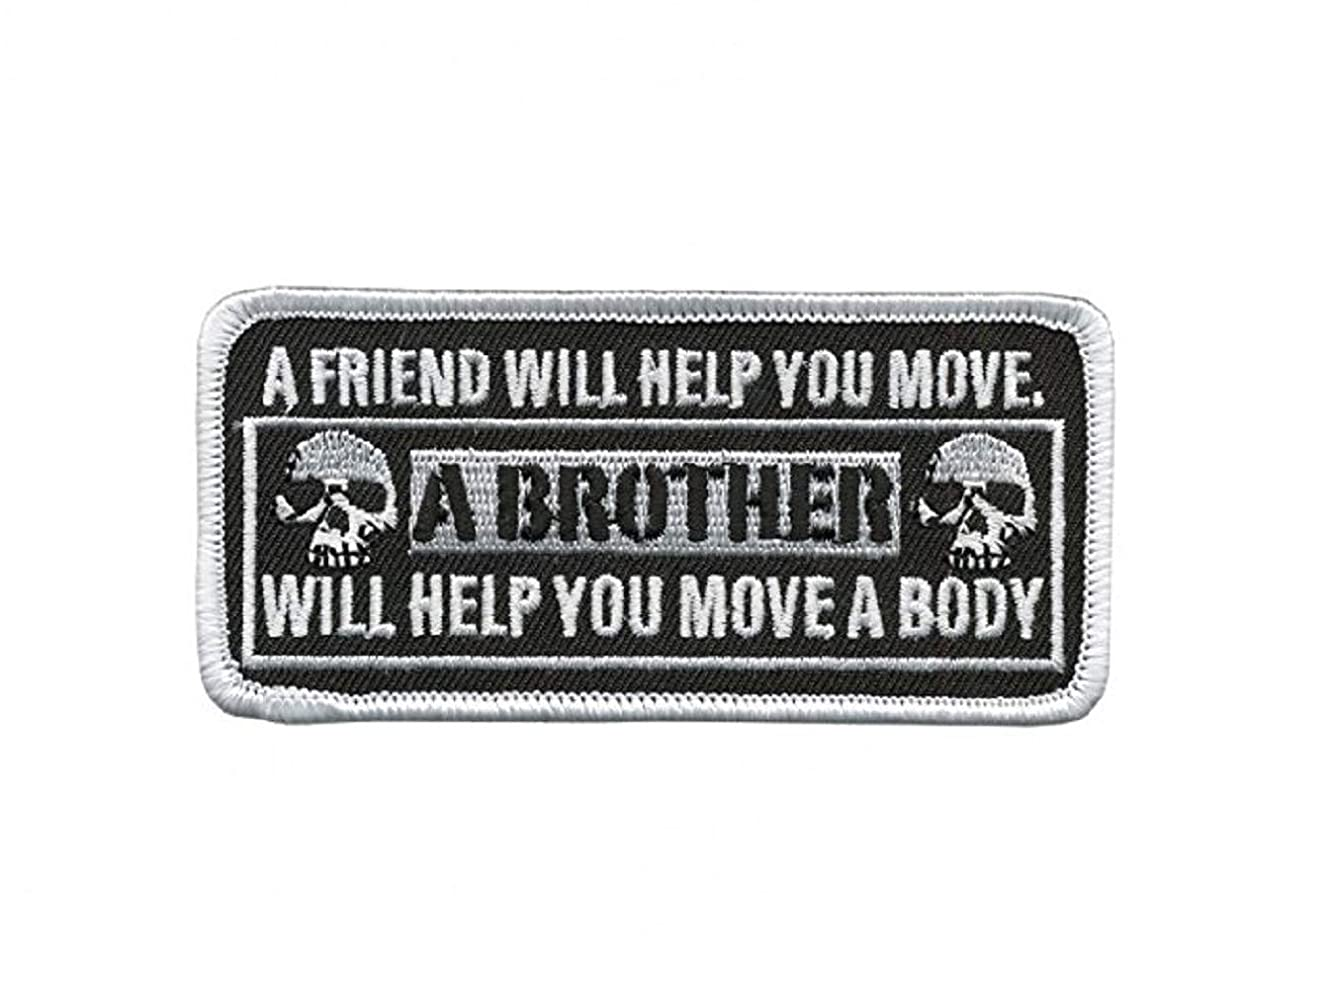 Officially Licensed Originals A Friend Will Help You Move, A Brother Will Help You Move A Body, Iron-On / Saw-On Rayon Patch - 4